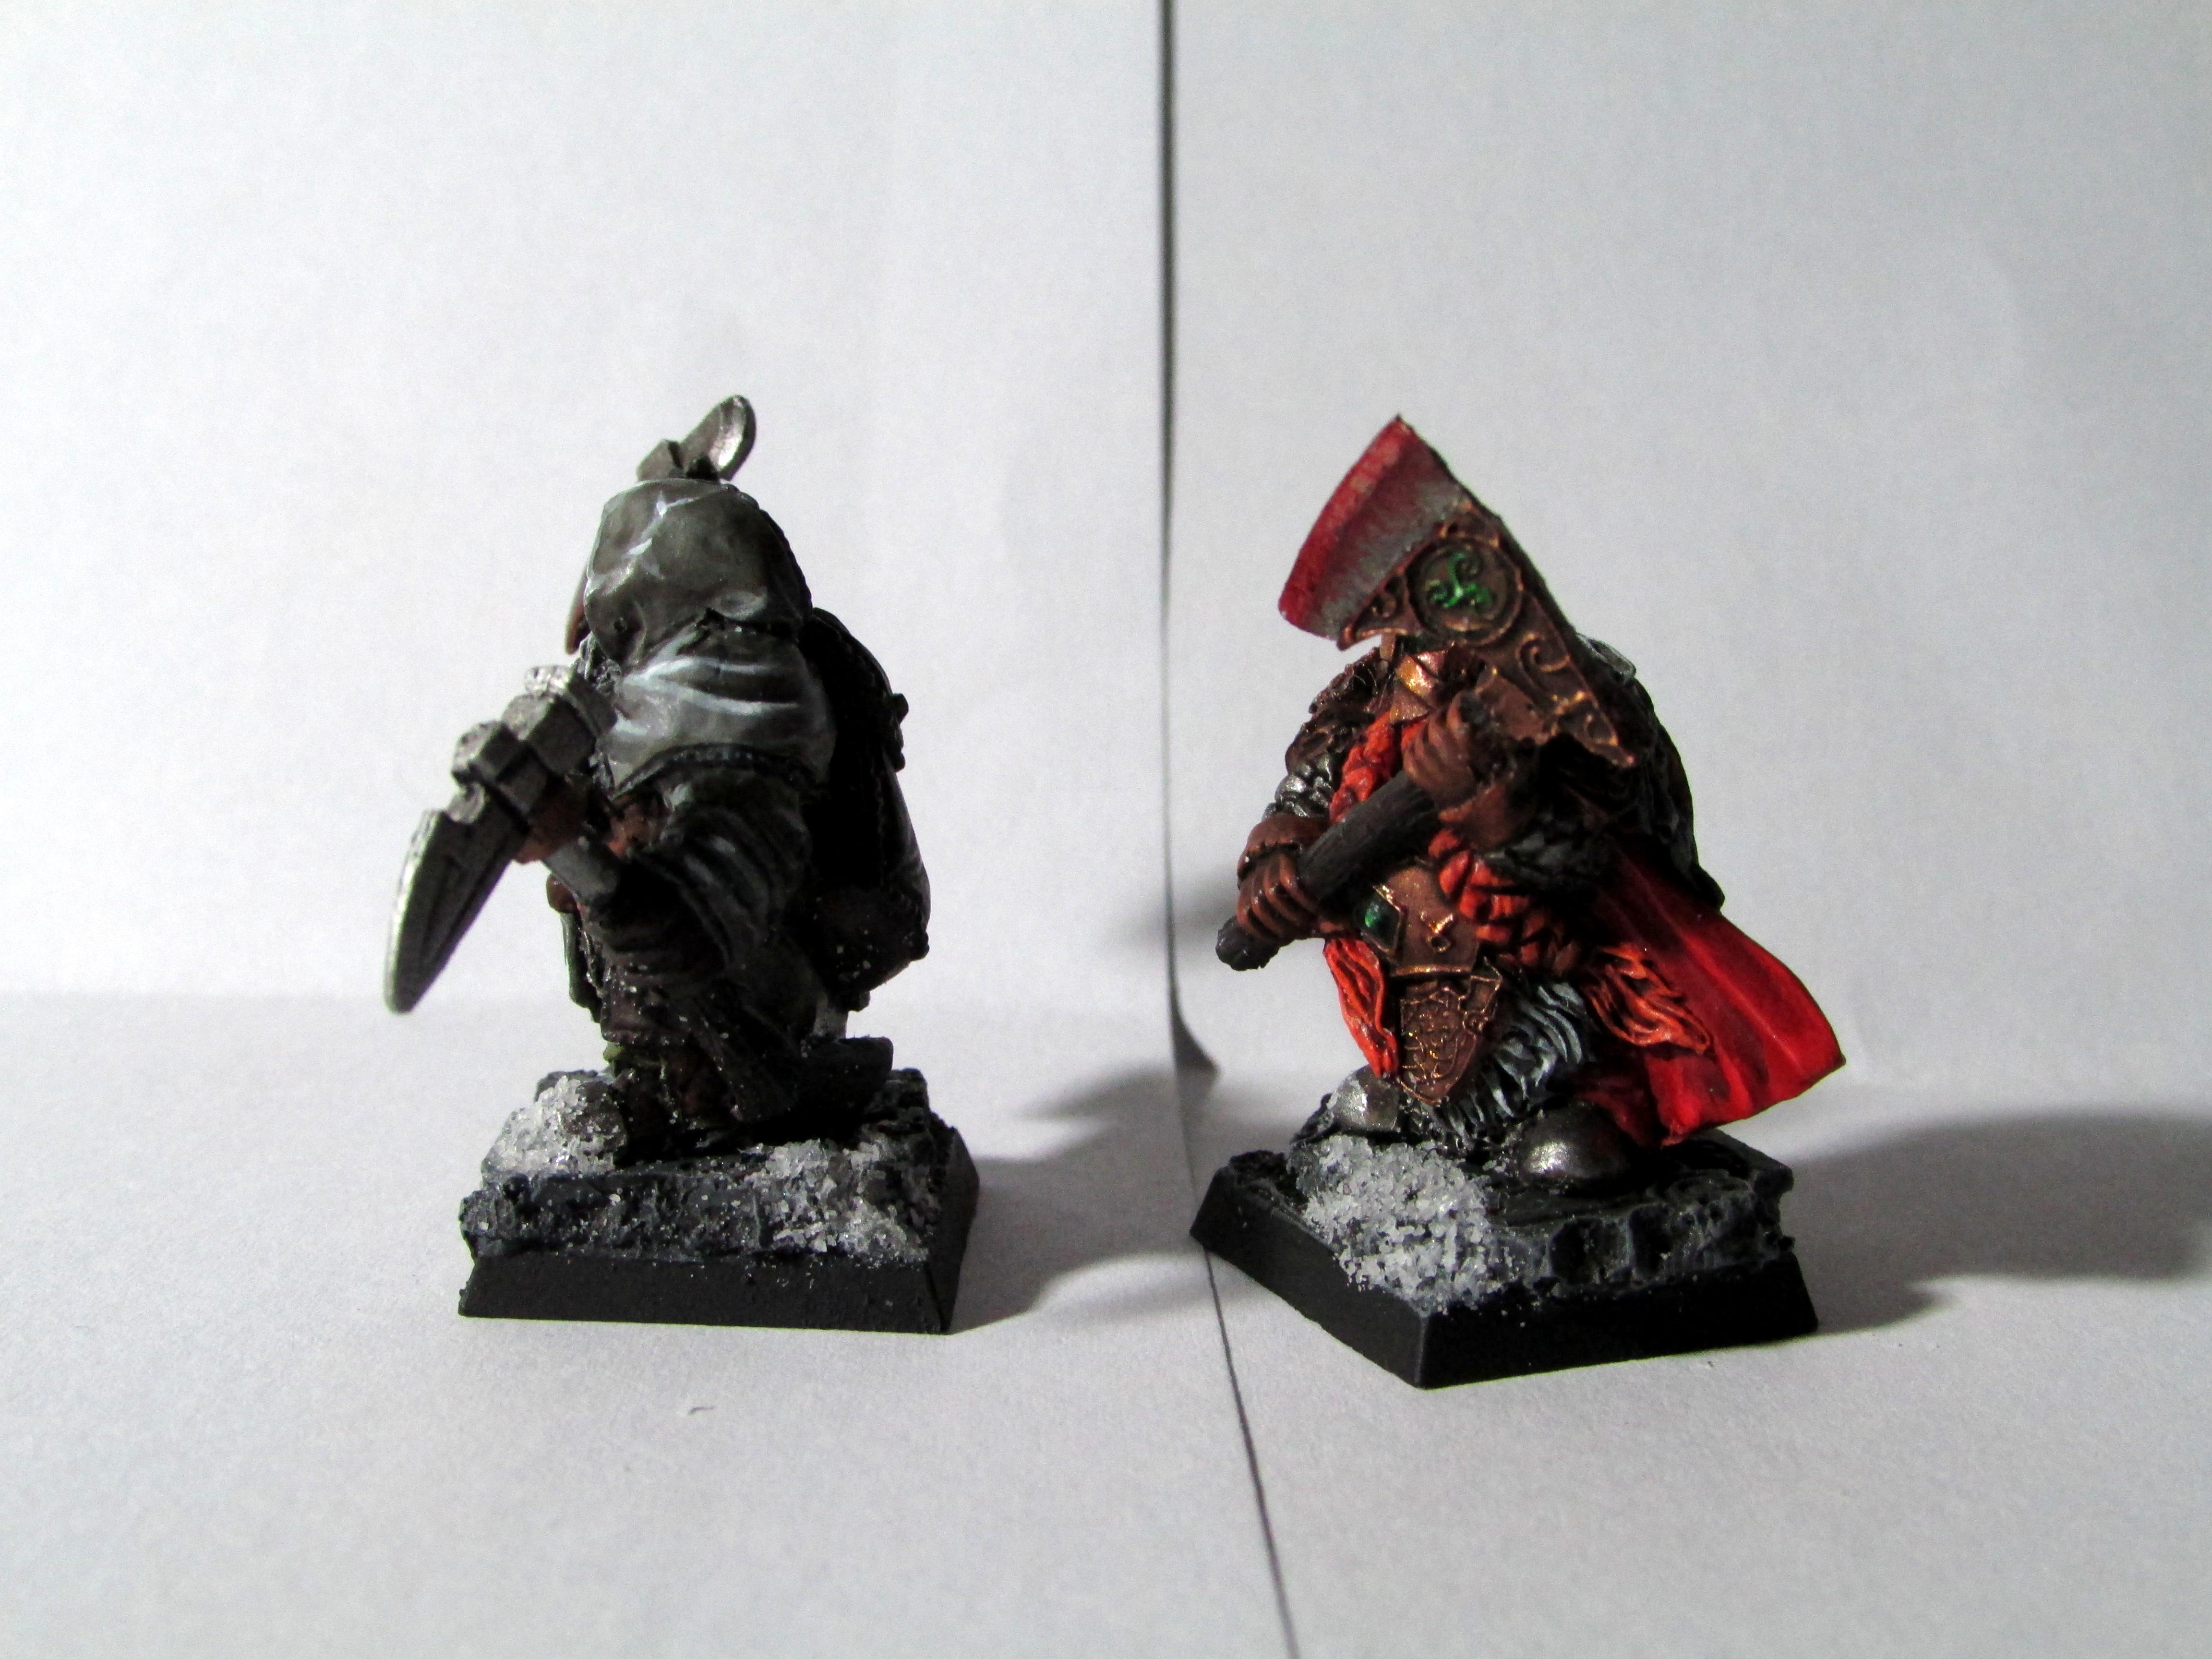 Armor, Axe, Dungeons And Dragons, Dwarves, Miner, Noble, Pathfinders, Rangers, Warhammer Fantasy